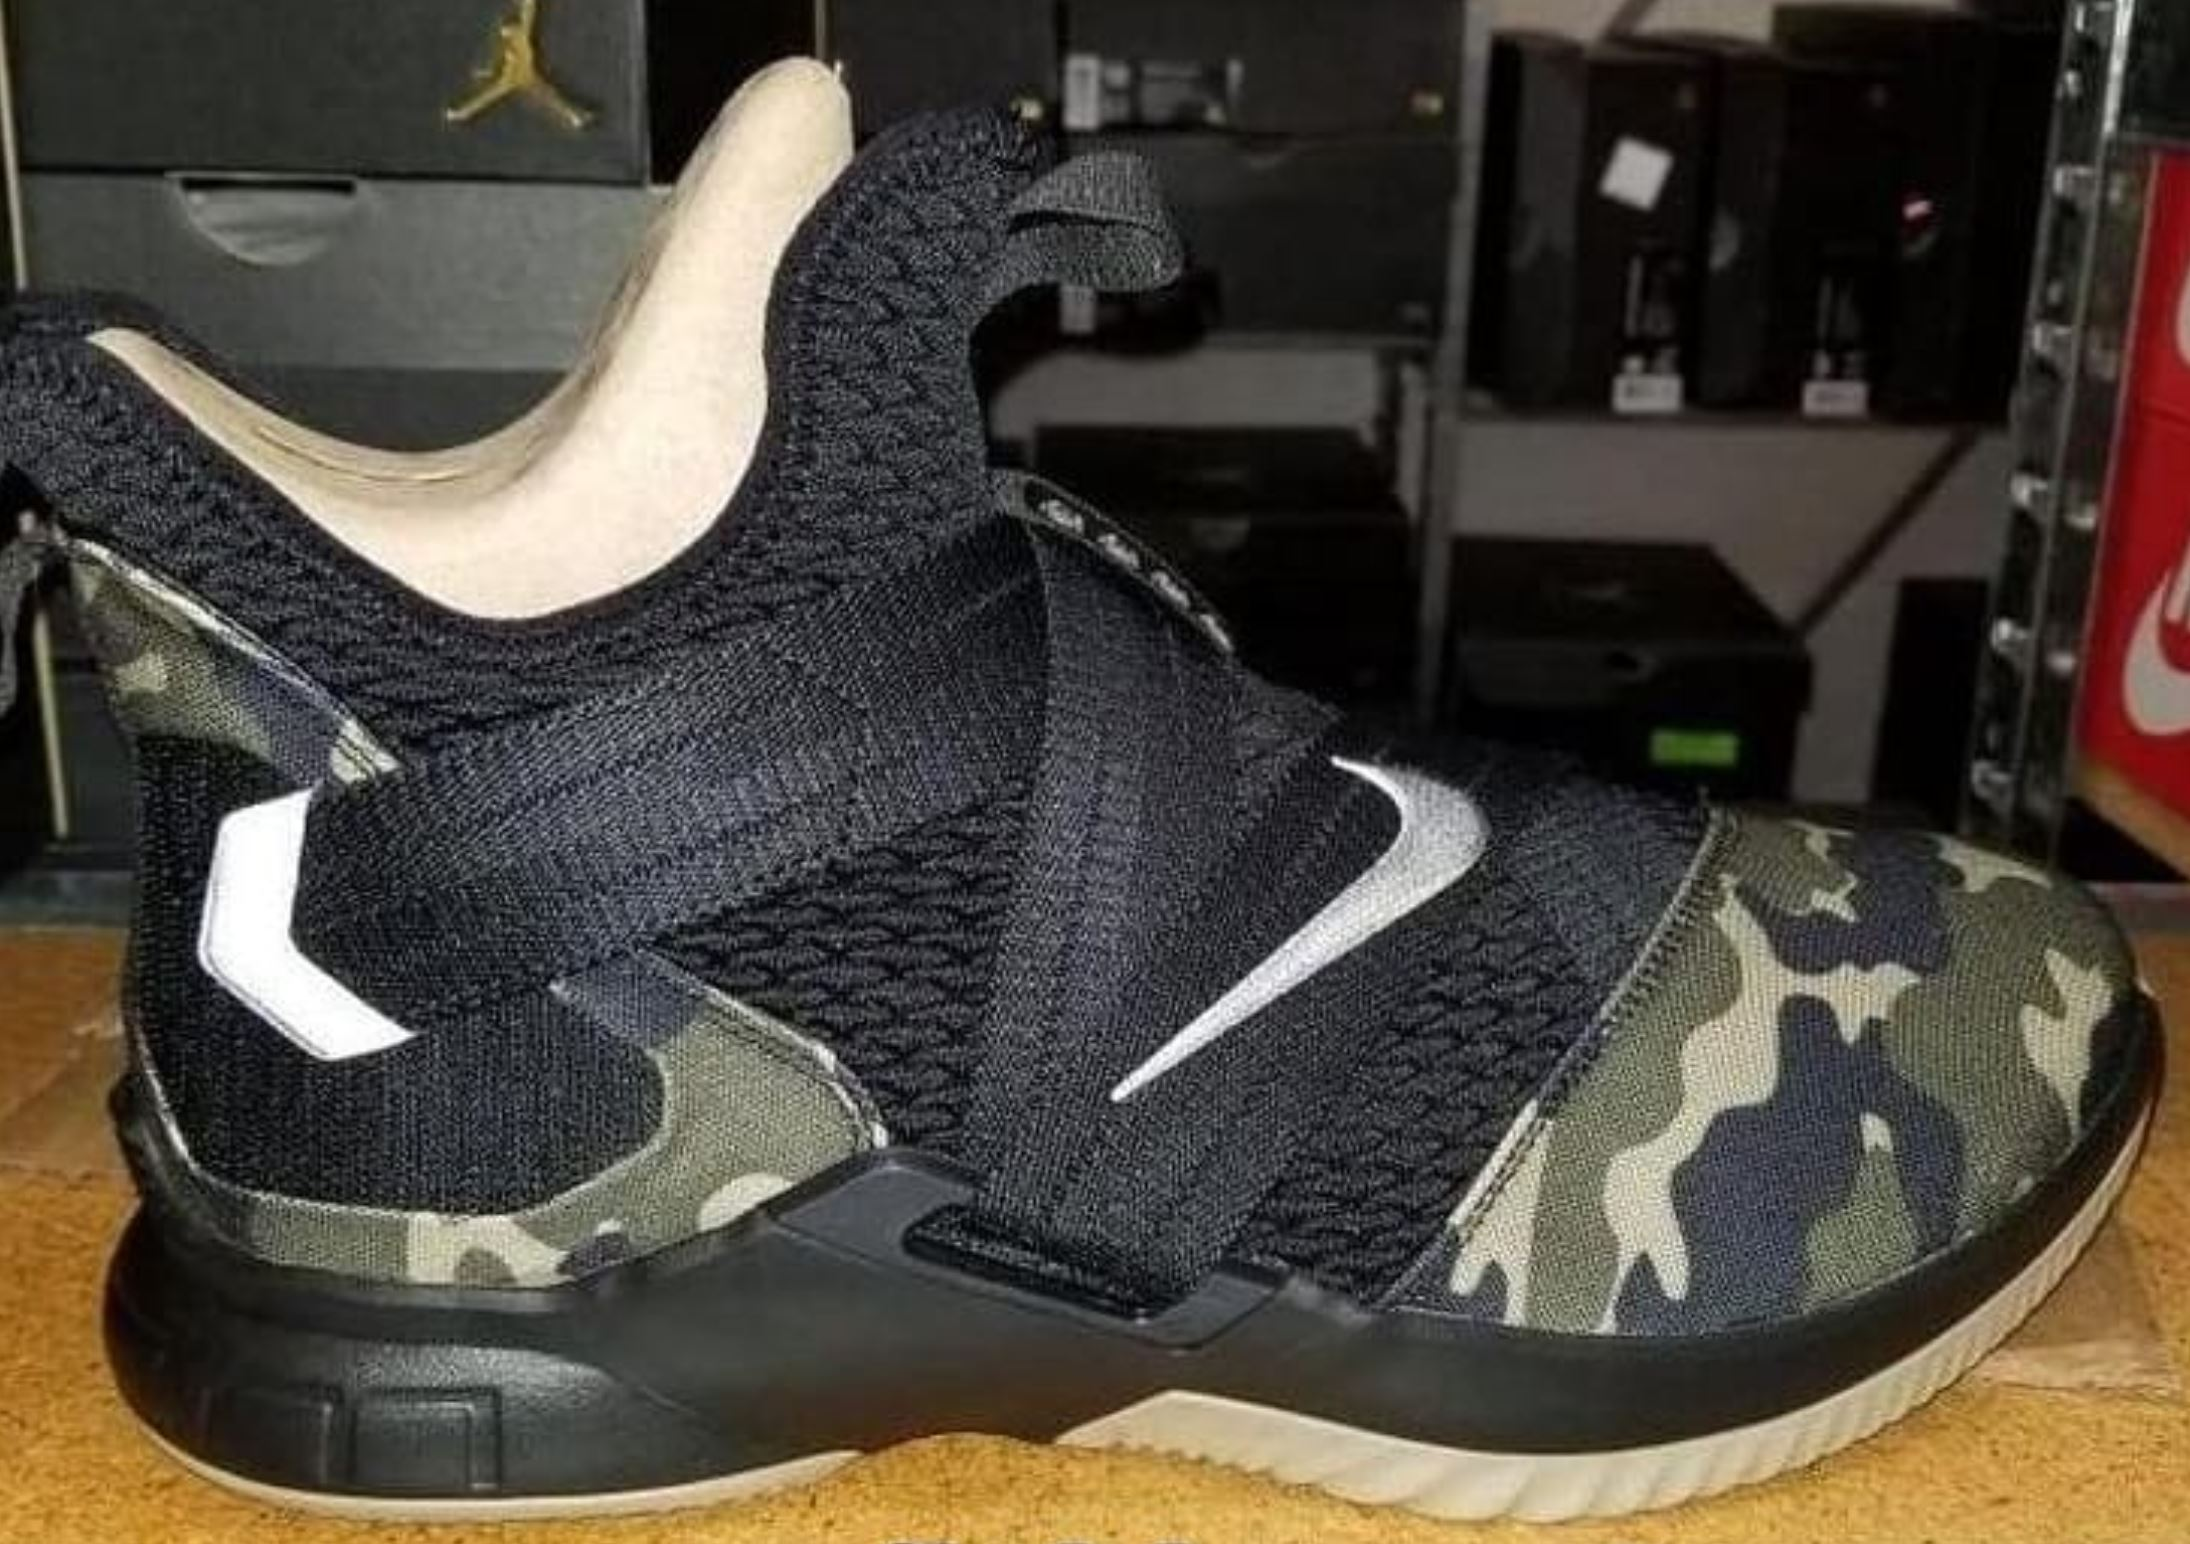 new concept 0899e 8b055 lebron soldier 12 Archives - WearTesters